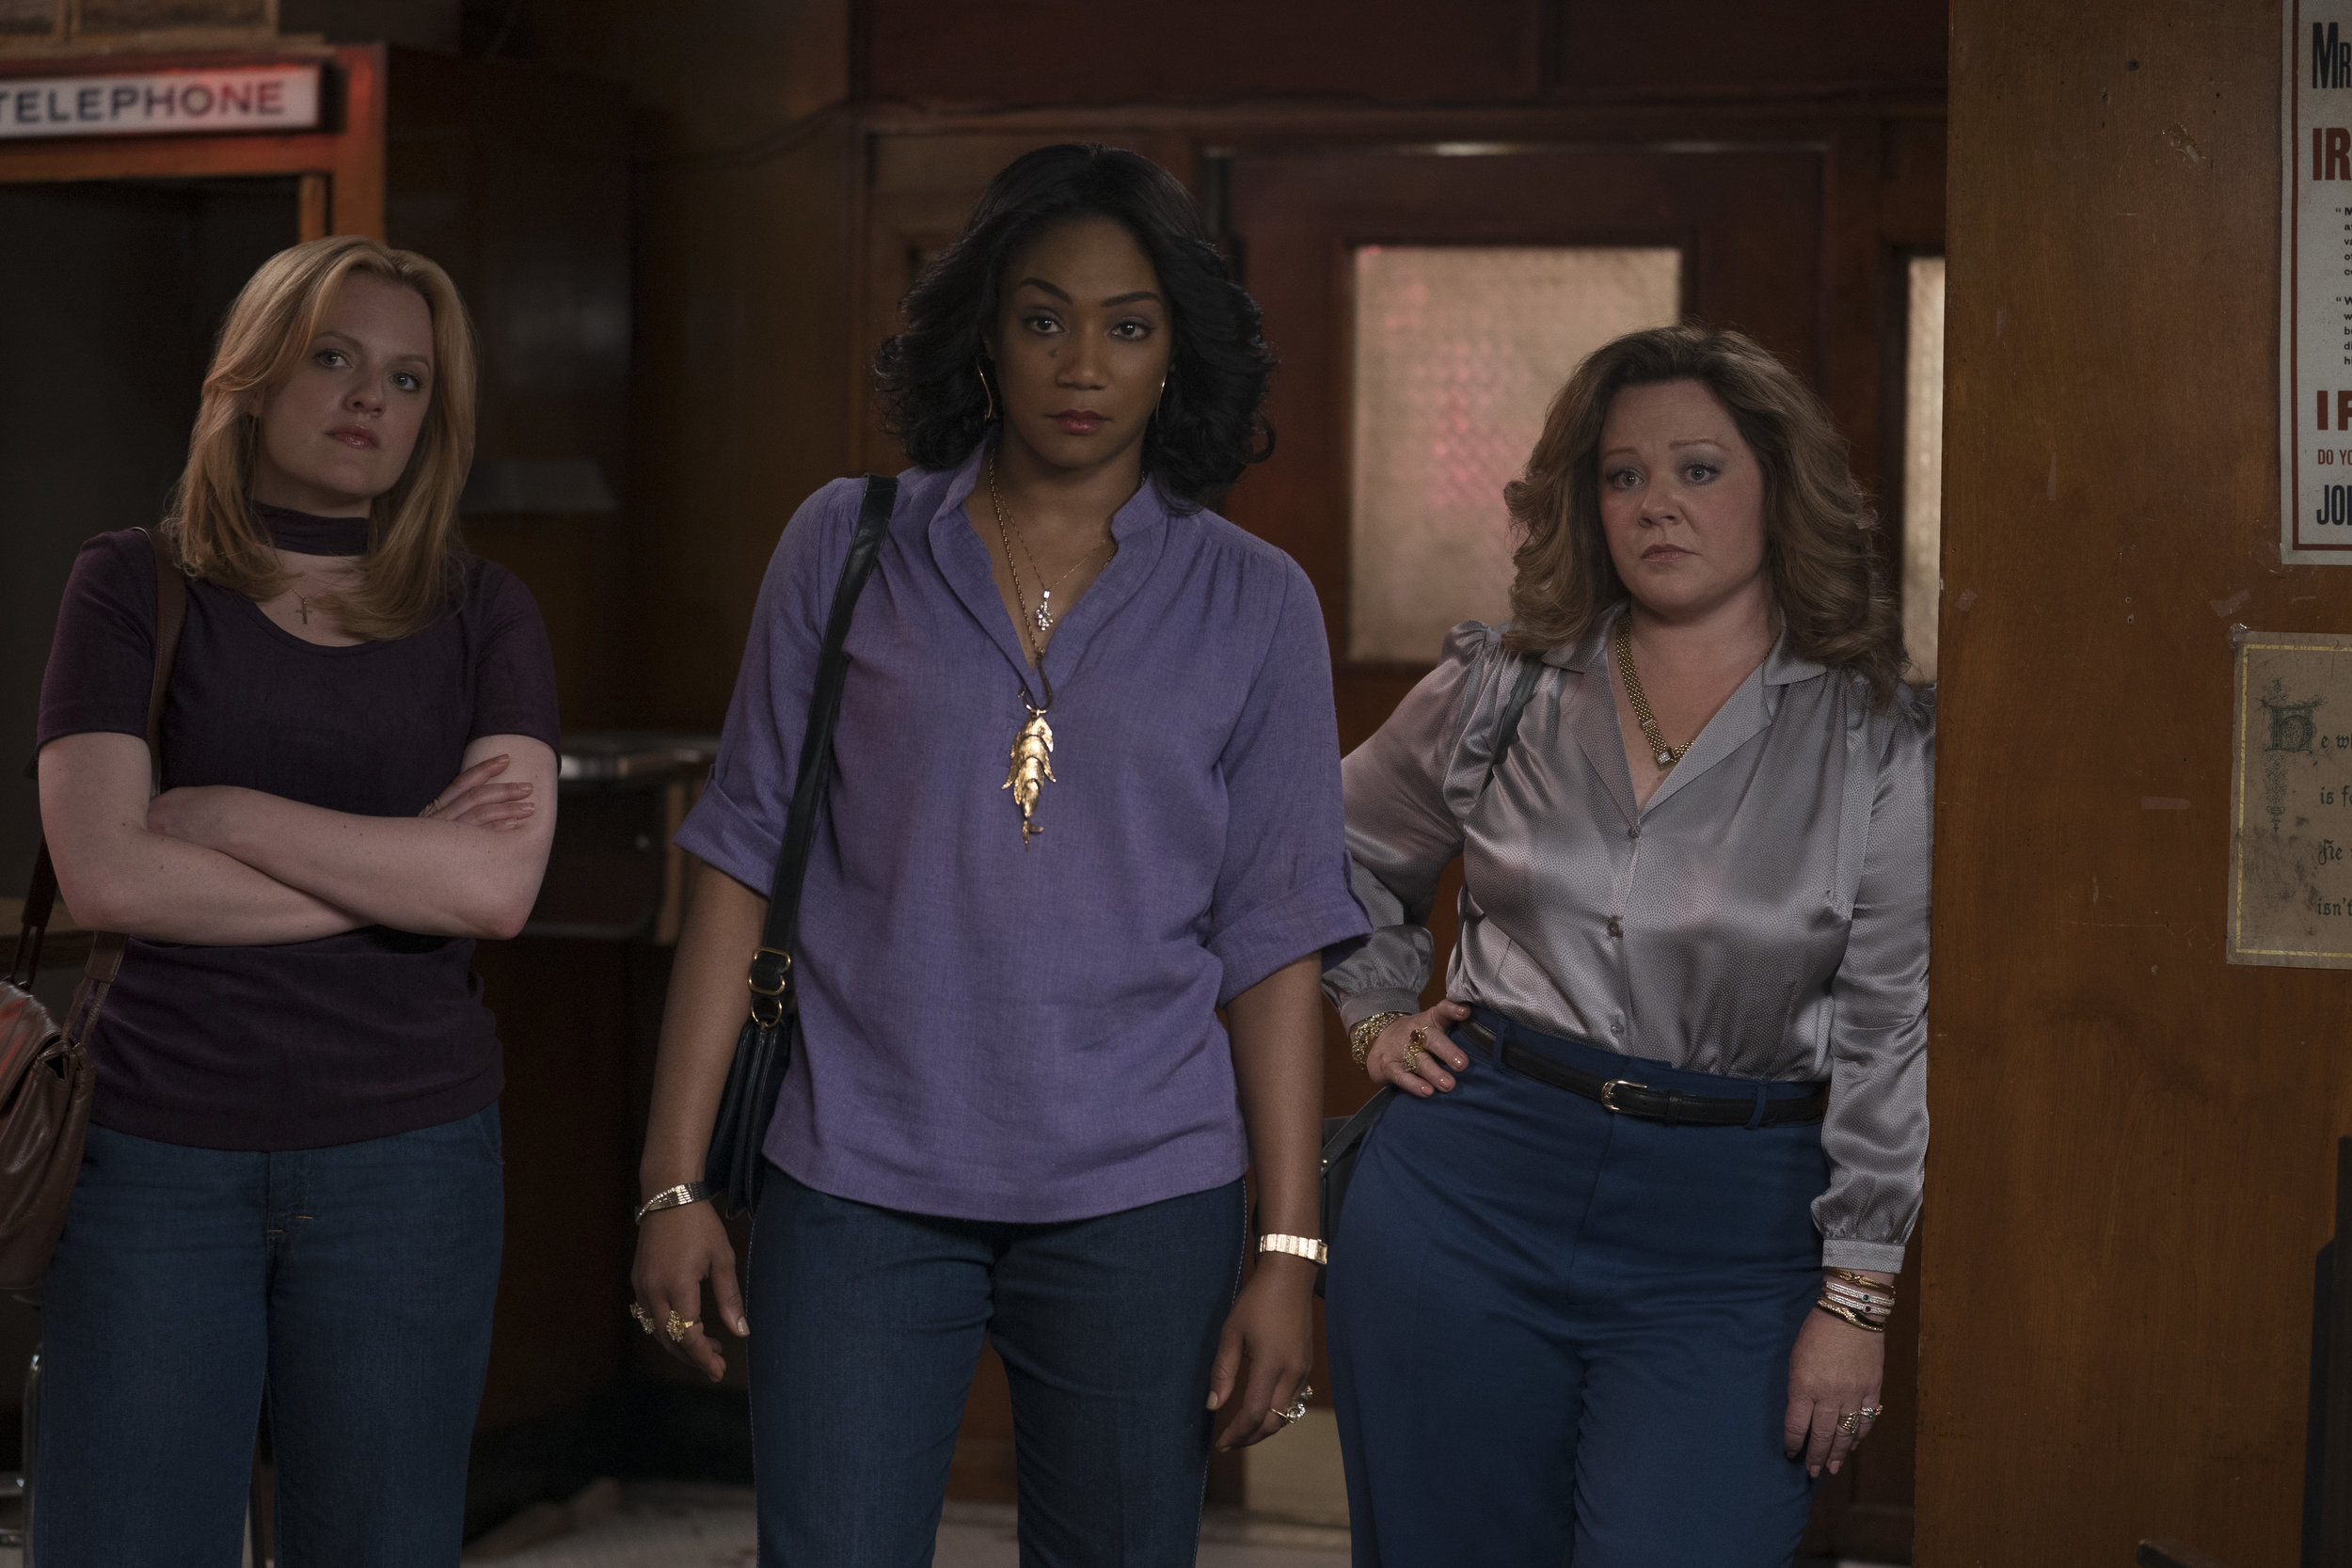 "Mob wives Claire (Elisabeth Moss), Ruby (Tiffany Haddish) and Kathy (Melissa McCarthy), from left, take over the business in their Hell's Kitchen neighborhood, in ""The Kitchen."" (Photo by Alison Cohen Rosa, courtesy of Warner Bros. Pictures.)"